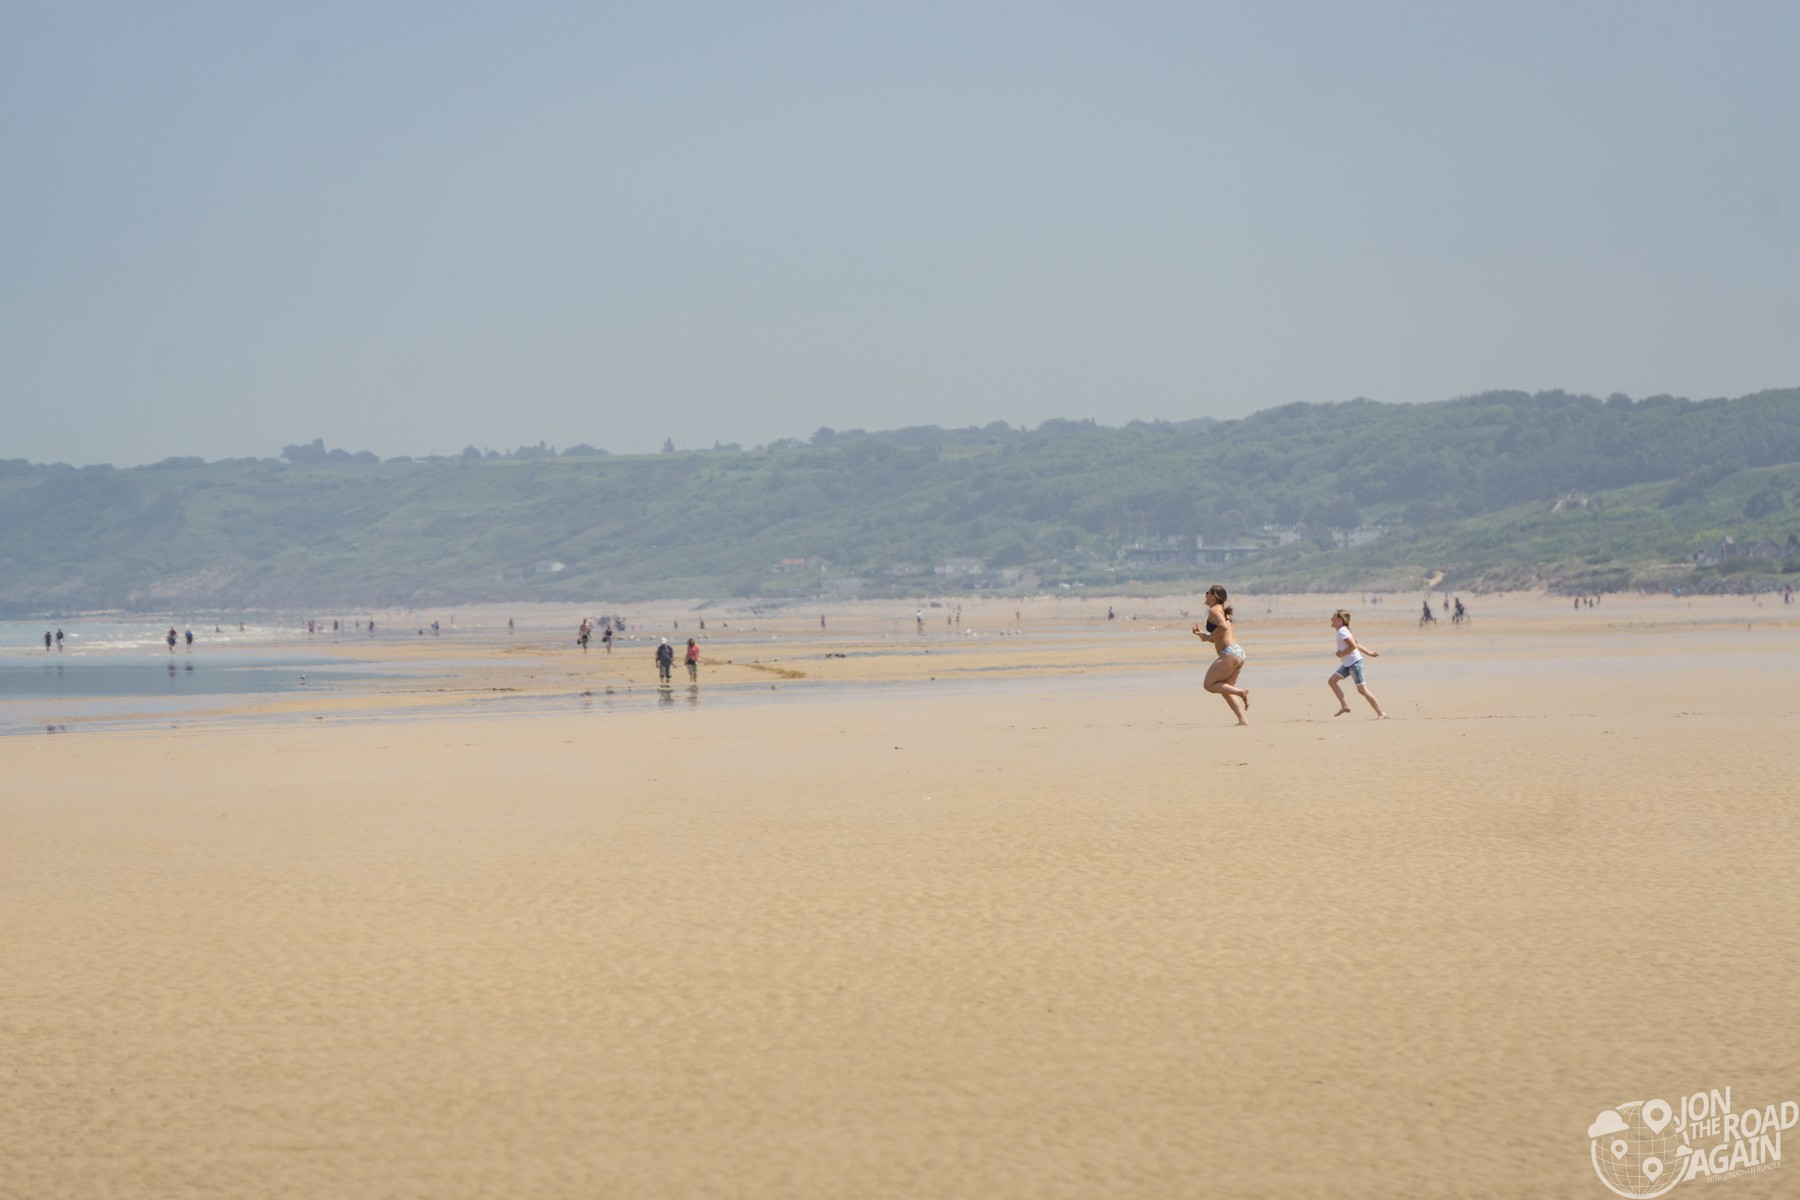 Running on Omaha Beach